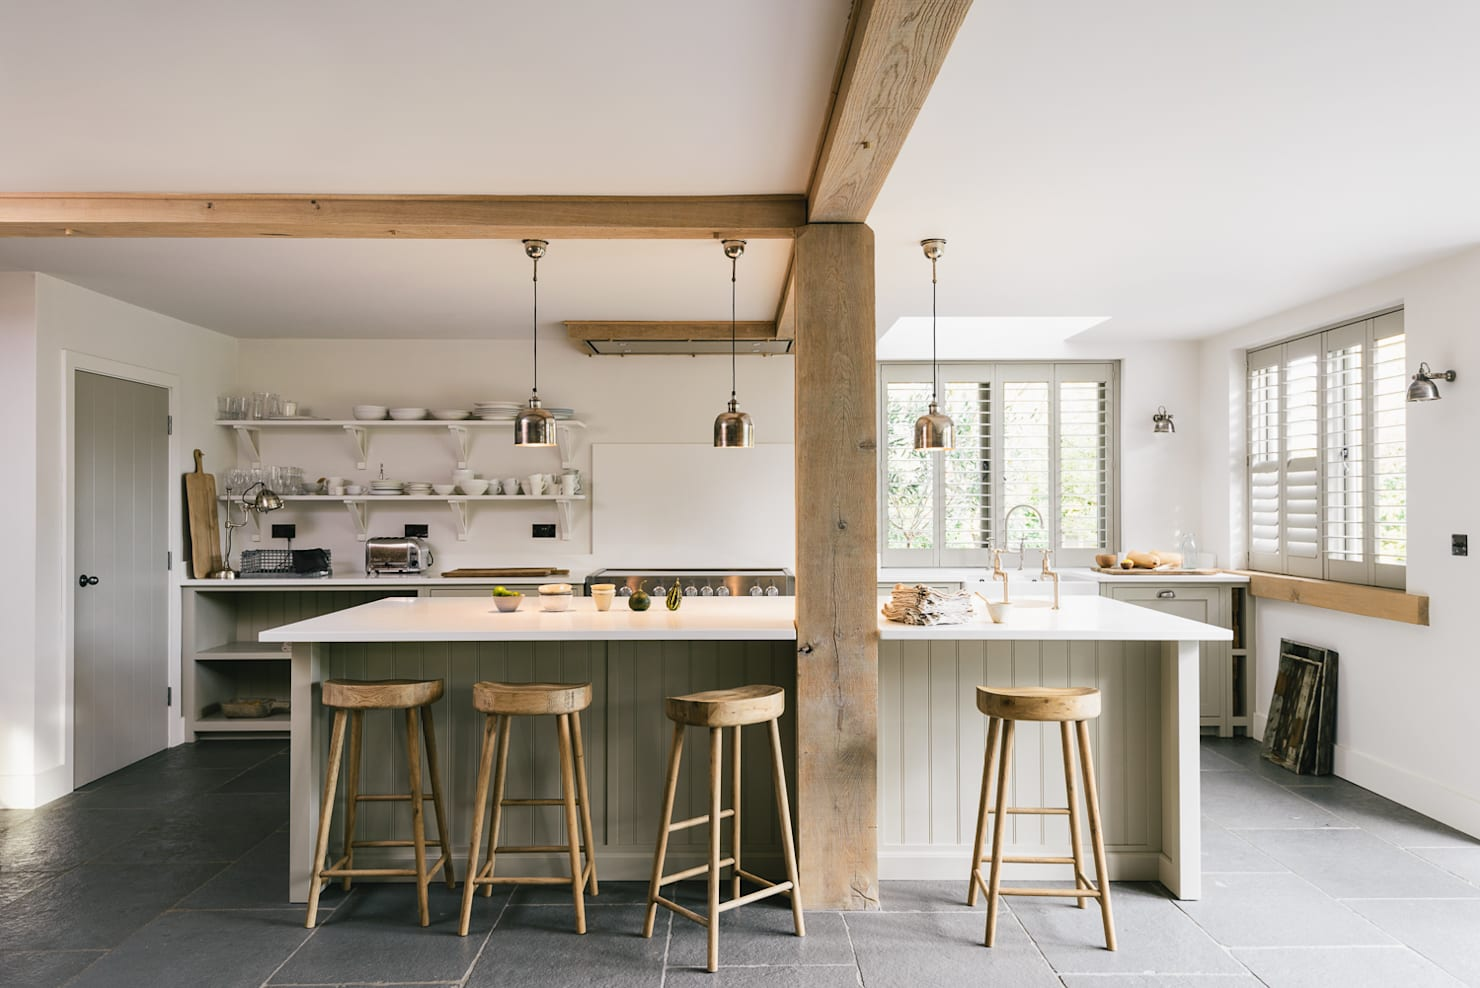 5 perfectly planned kitchens for you to copy